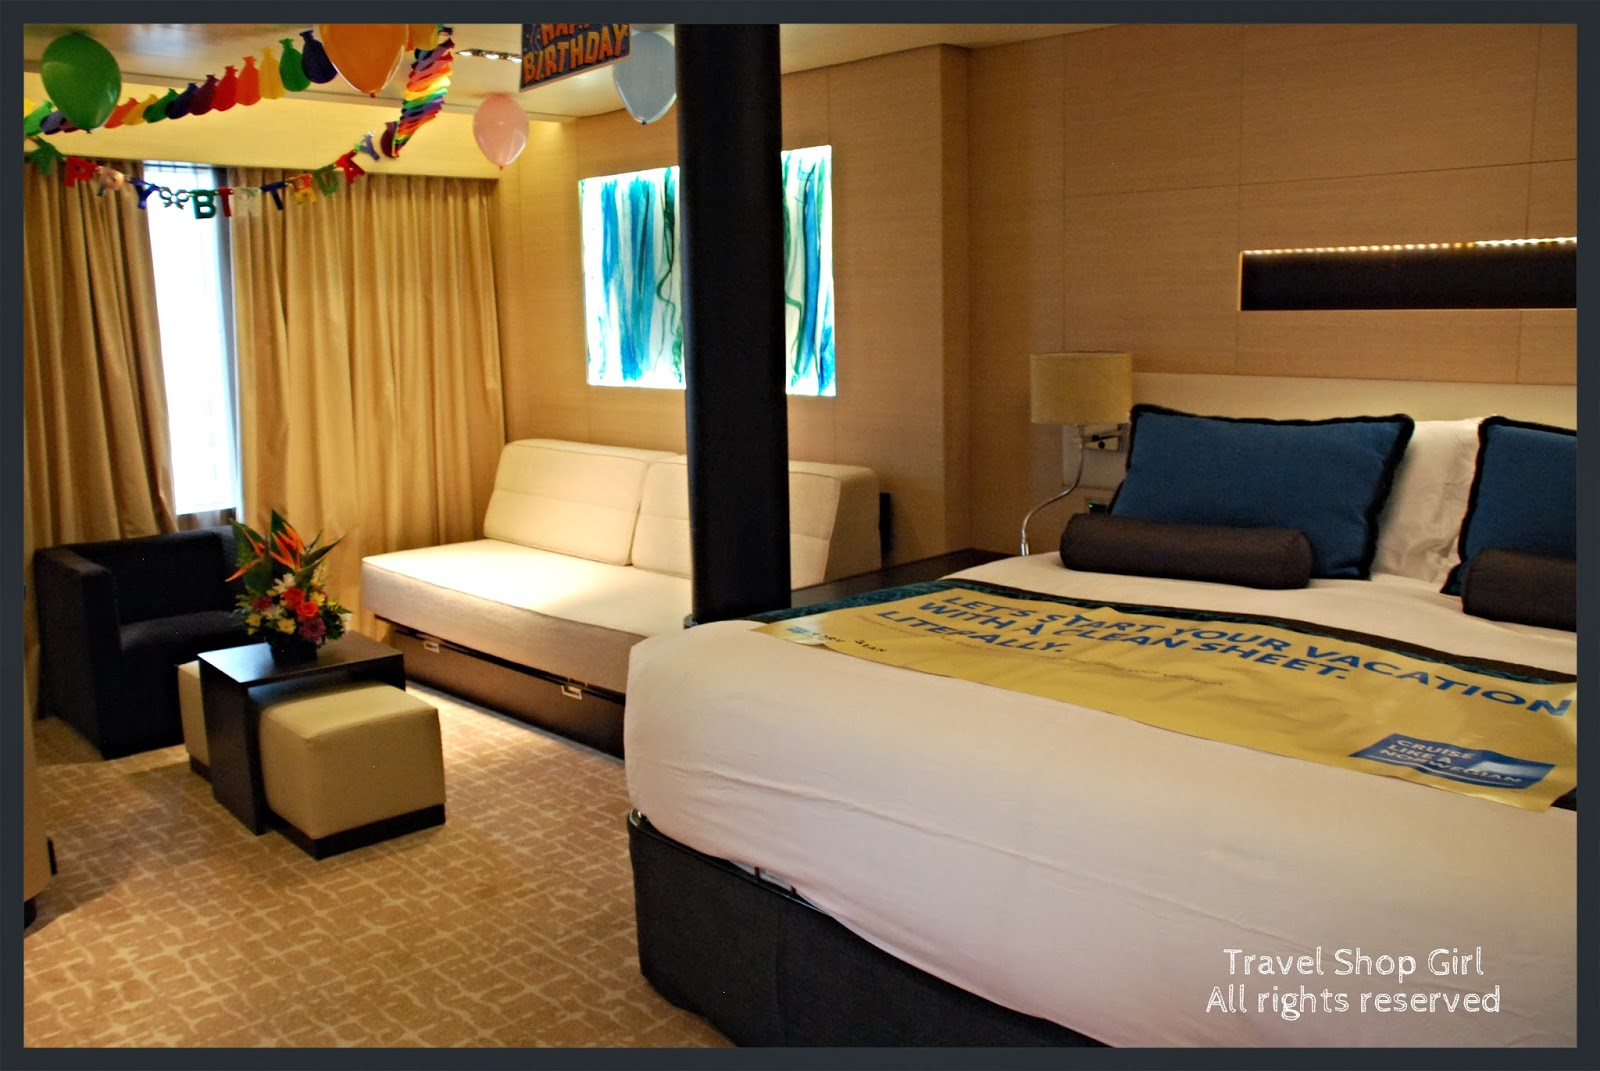 Norwegian Breakaway Norwegian Cruise Line Review Part Ii Cabins Travel Shop Girl